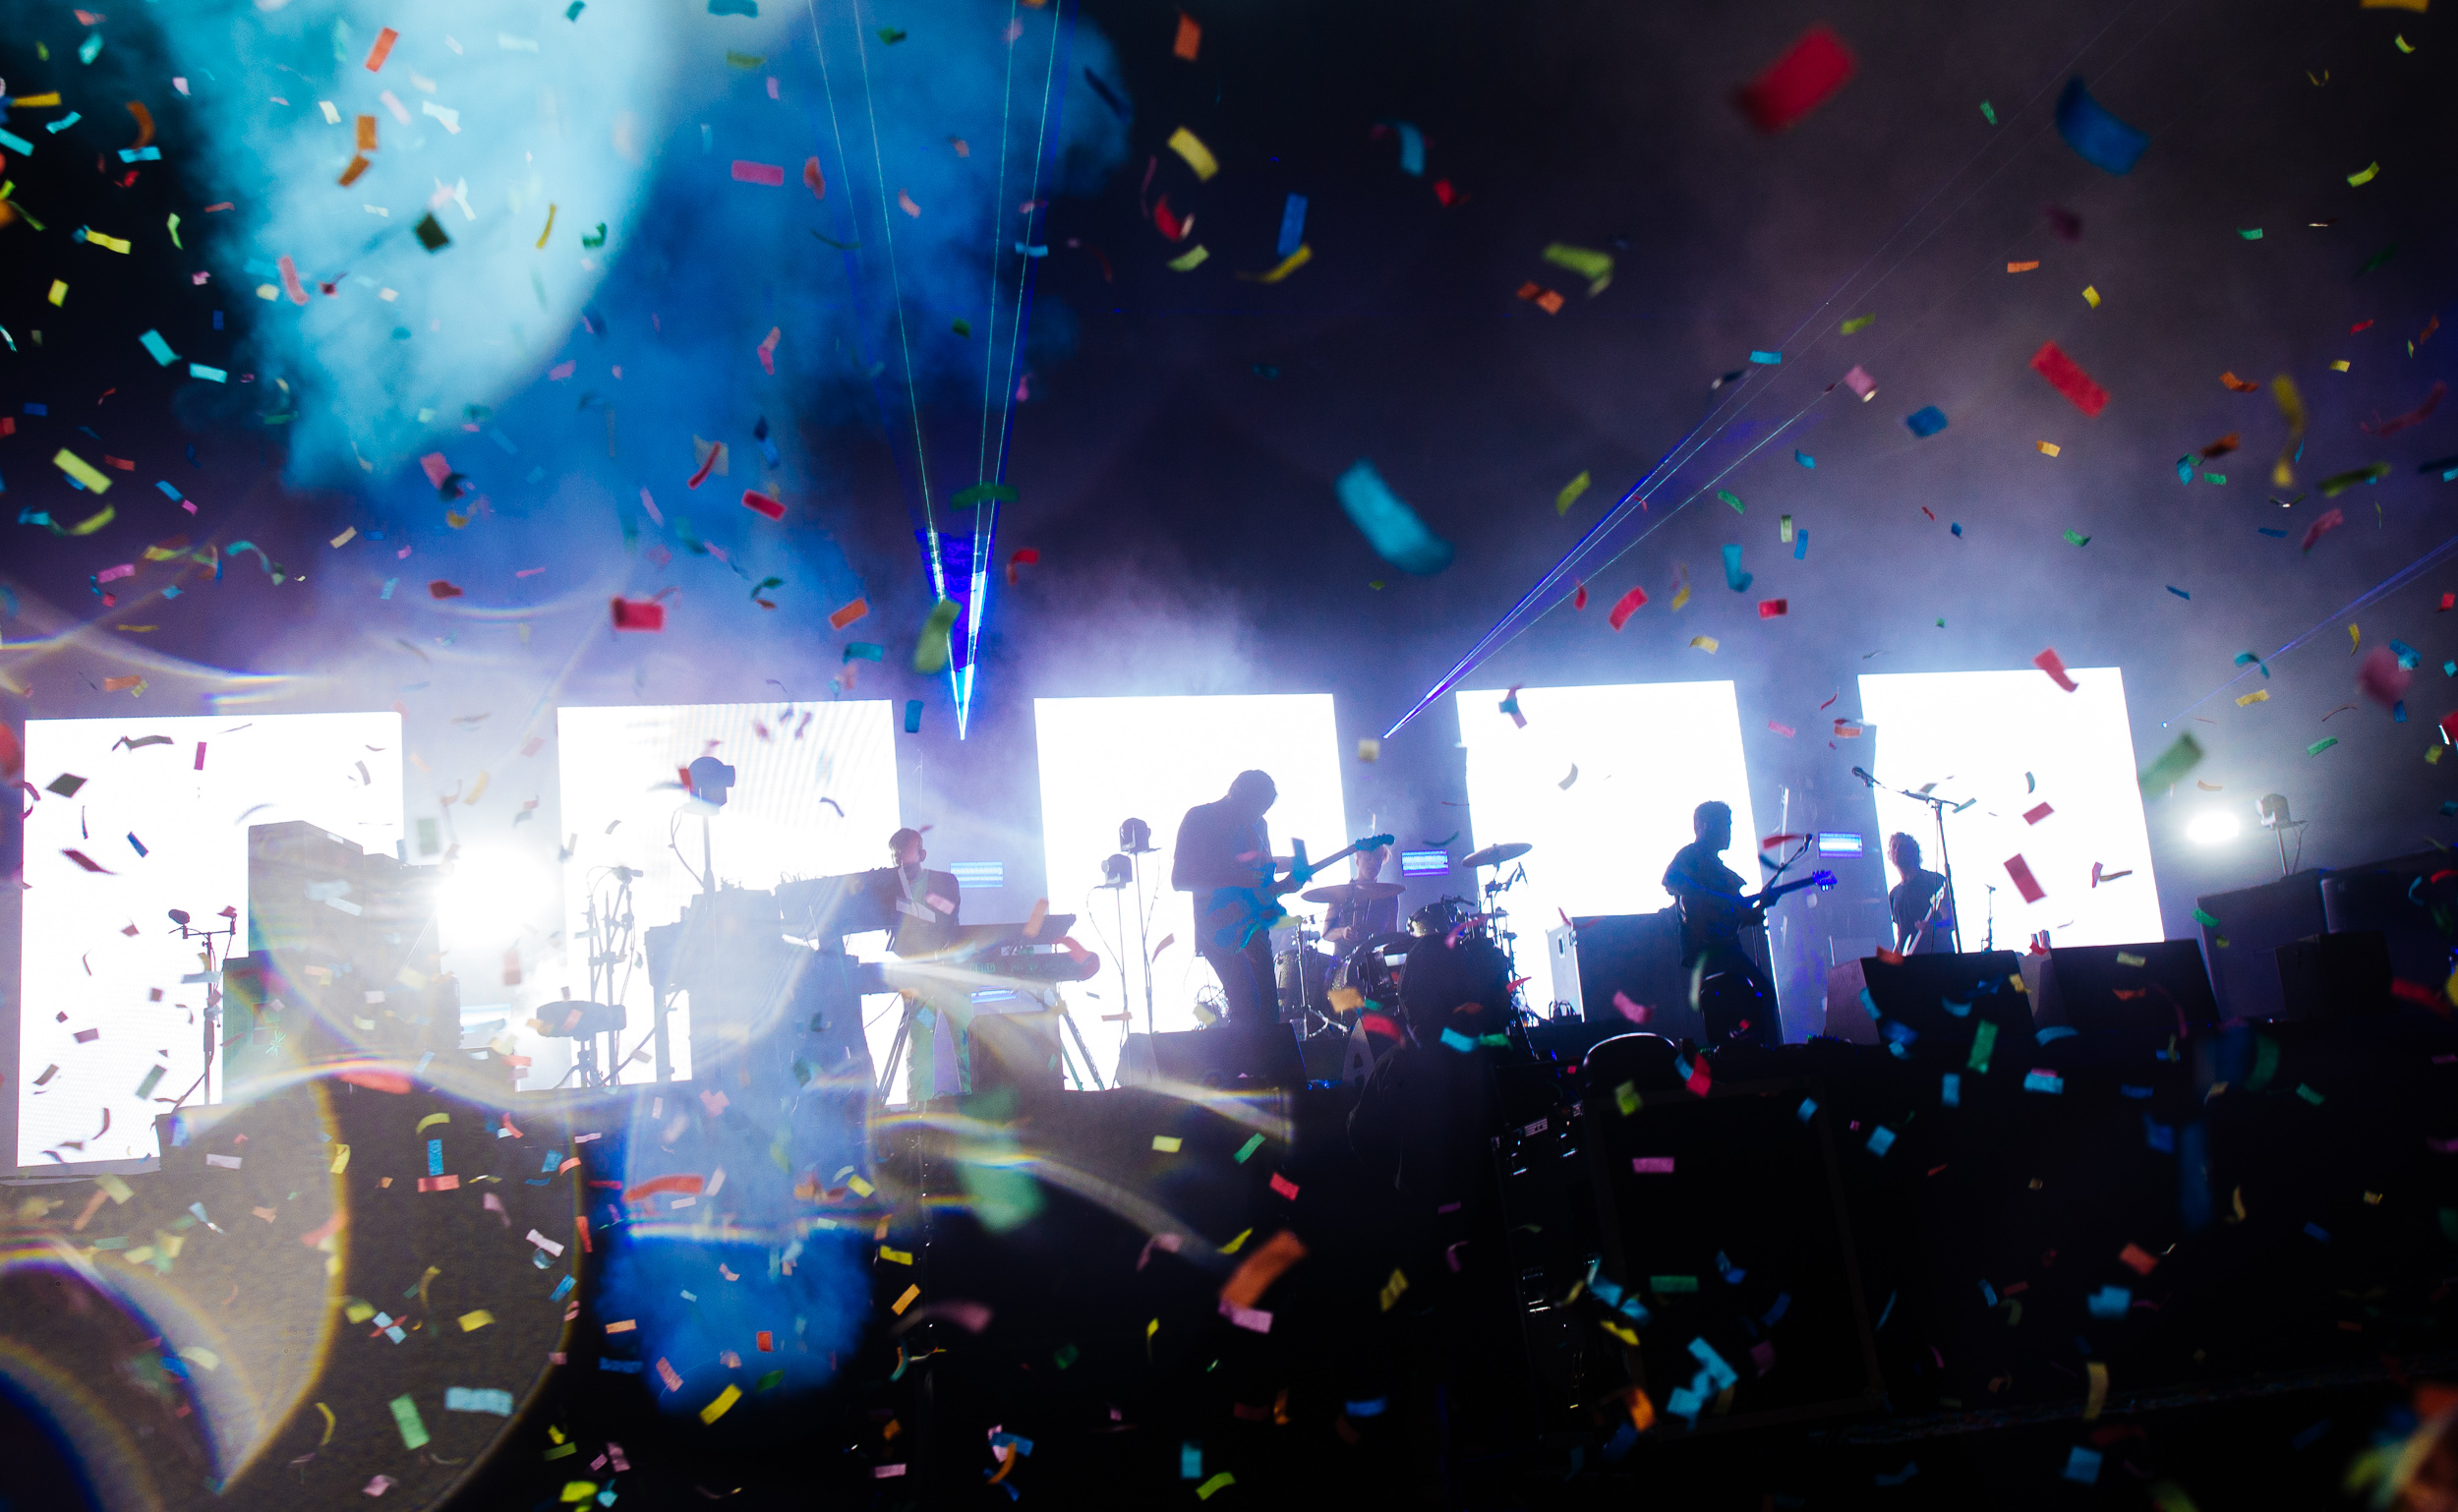 Foals at Leeds Festival by Adam Elmakias